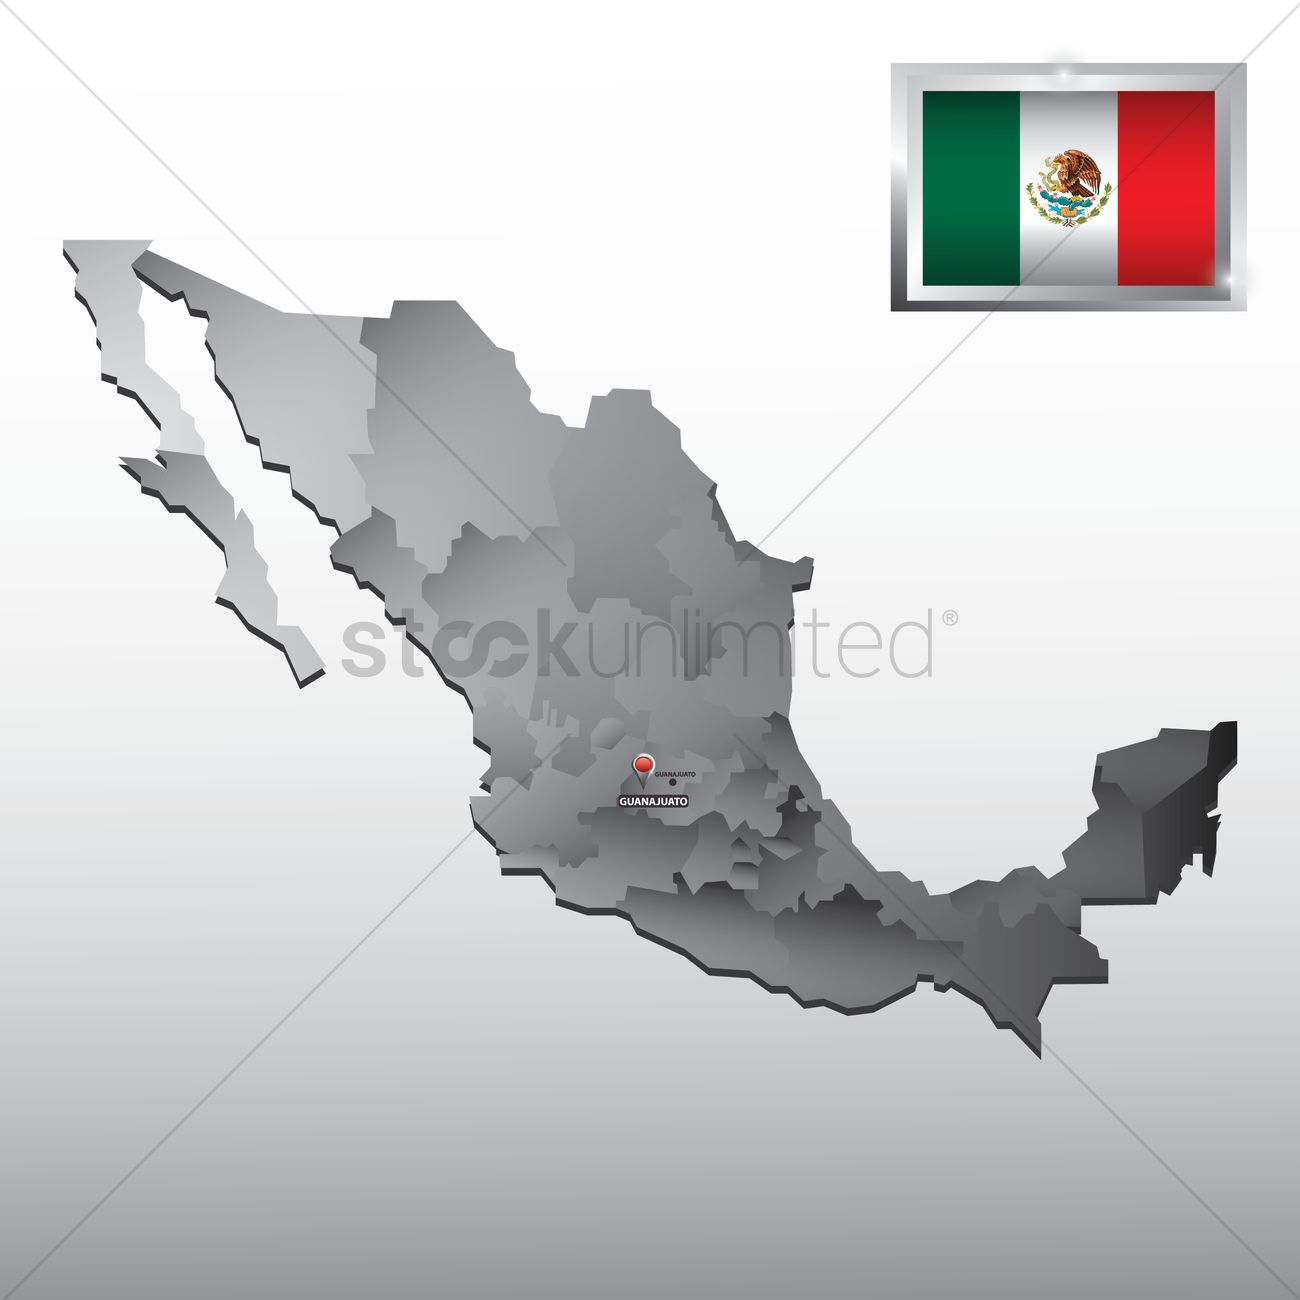 Mexico Map Guanajuato.Navigation Pointer Indicating Guanajuato On Mexico Map Vector Image